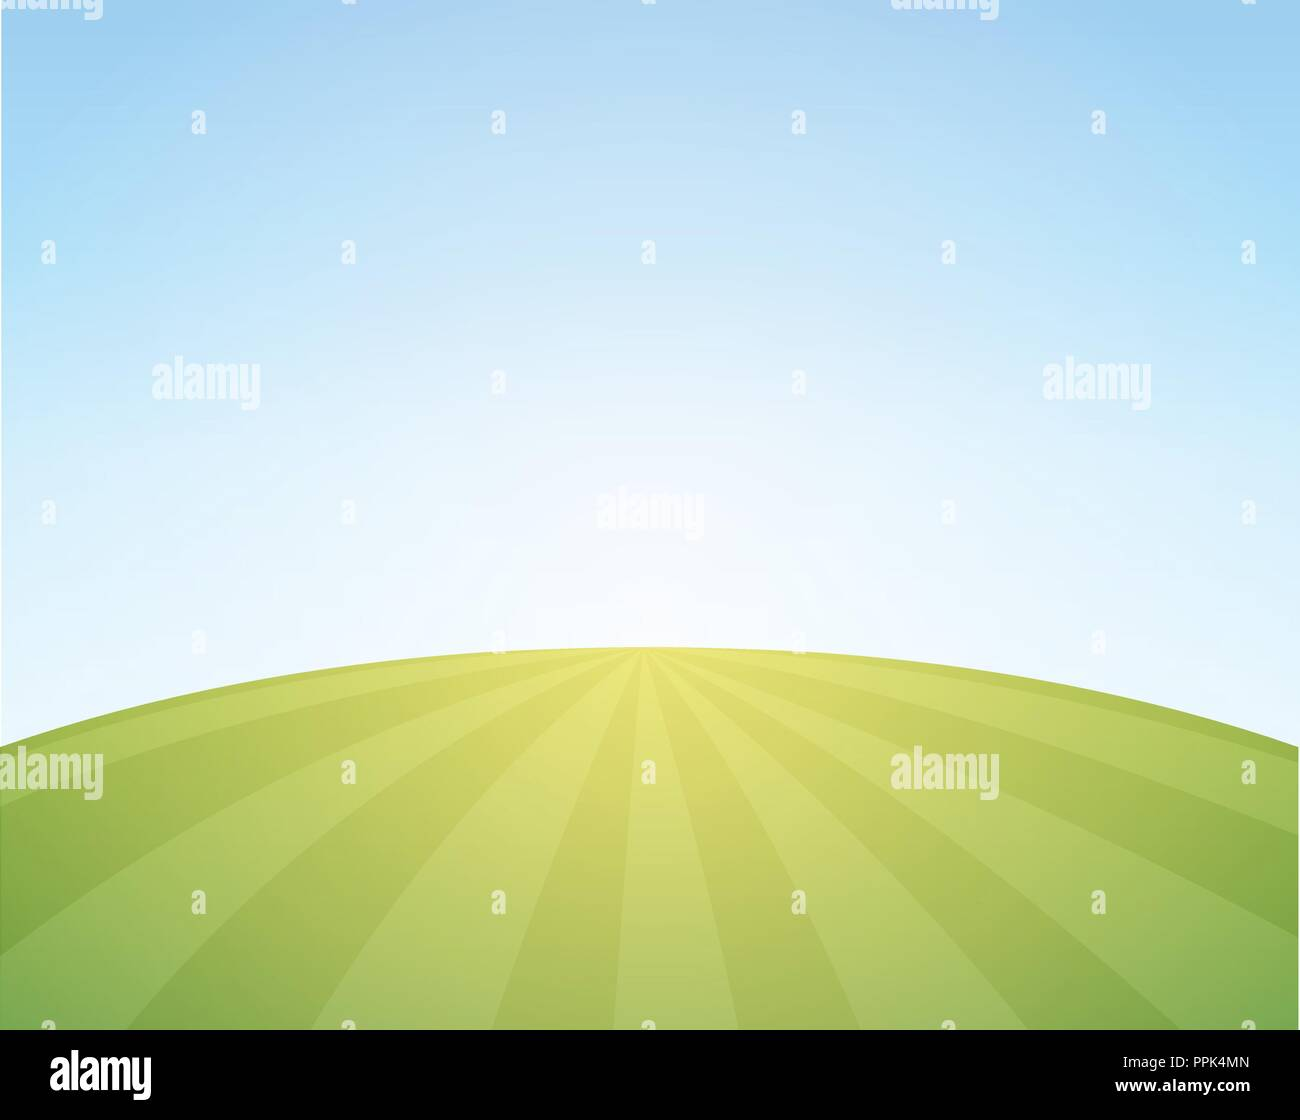 Vector Scenic Background of Countryside - Illustration with Wheat Field under blue sky. - Stock Vector